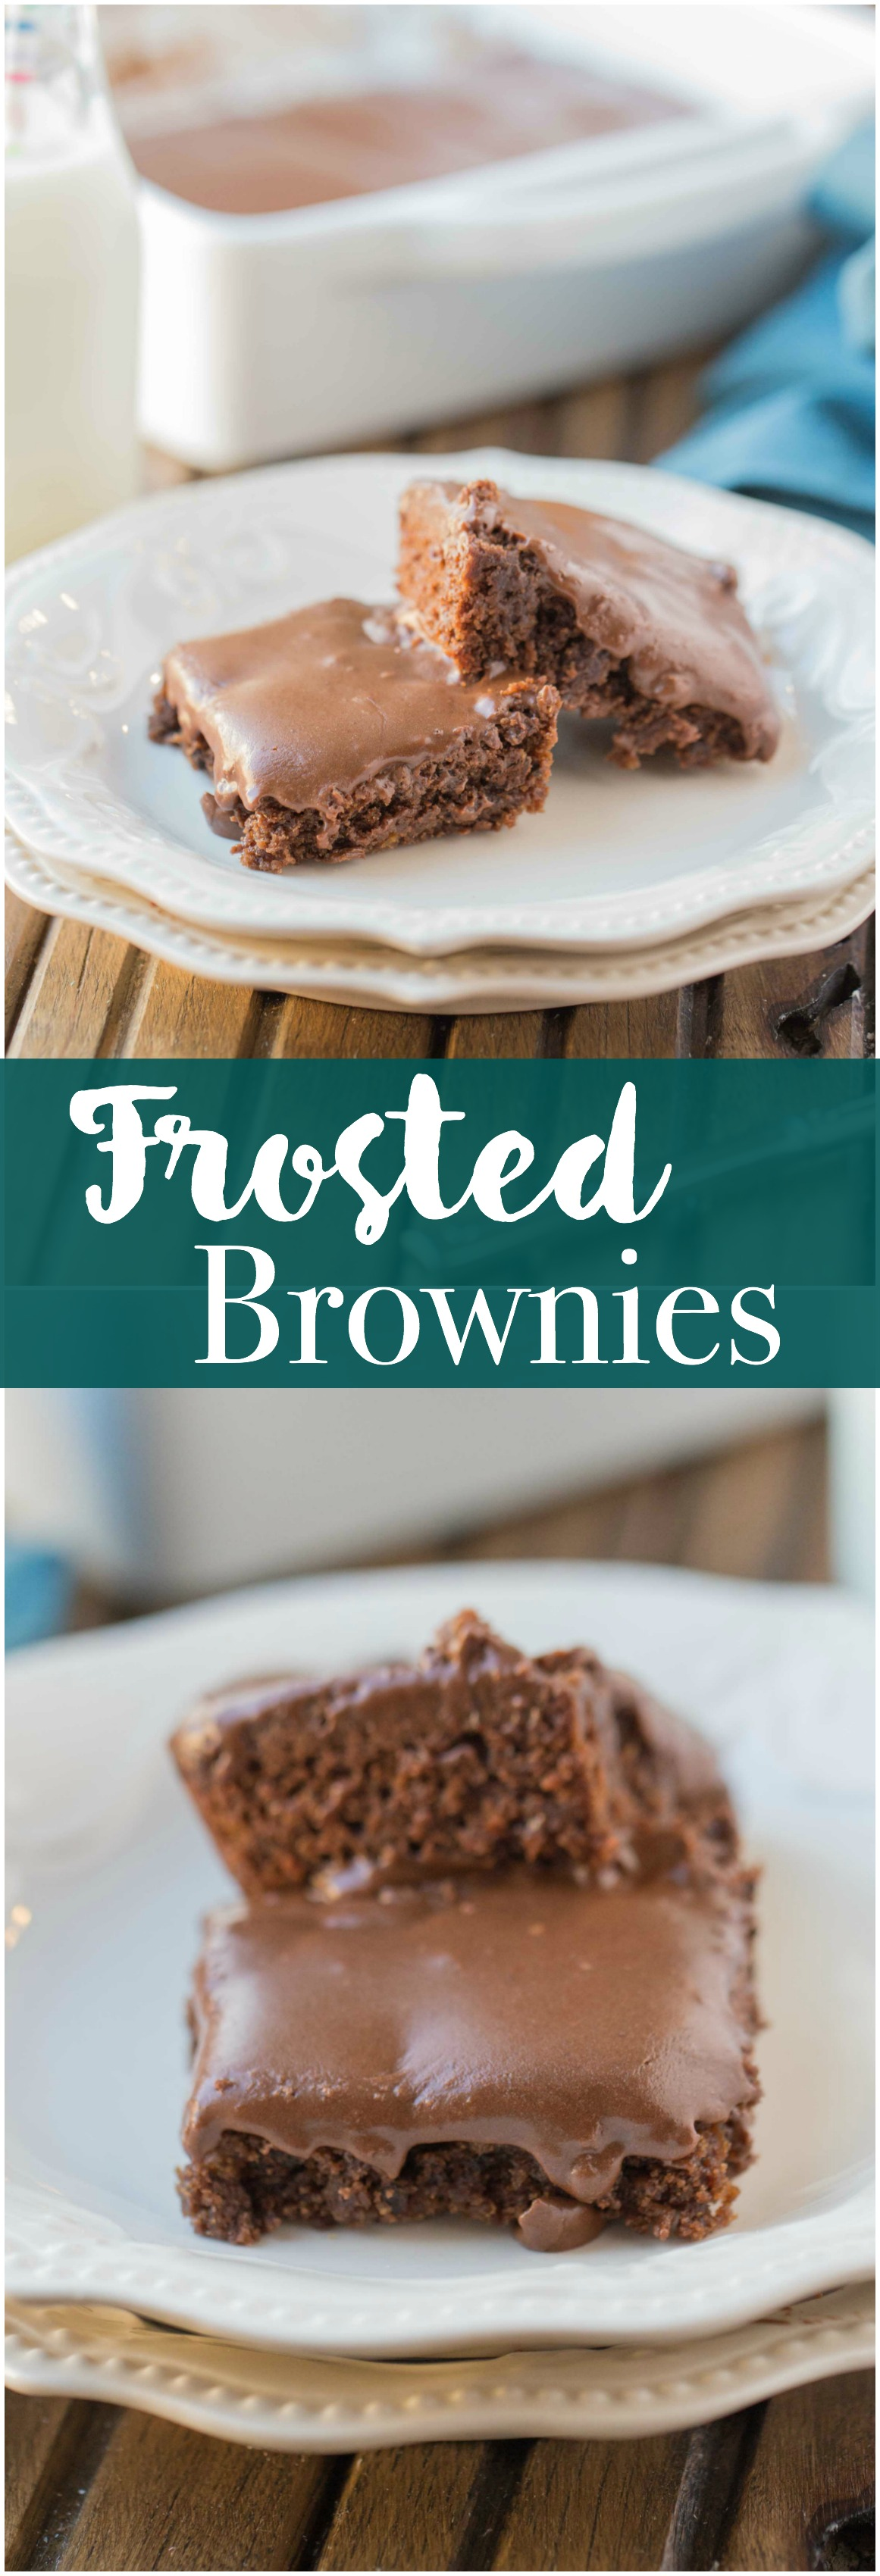 Frosted Brownies are a must have recipe! Brownies that are moist, delicious and the frosting takes these brownies to a whole new level. Grab that glass of milk because you'll want it with a slice of these yummy Frosted Brownies!